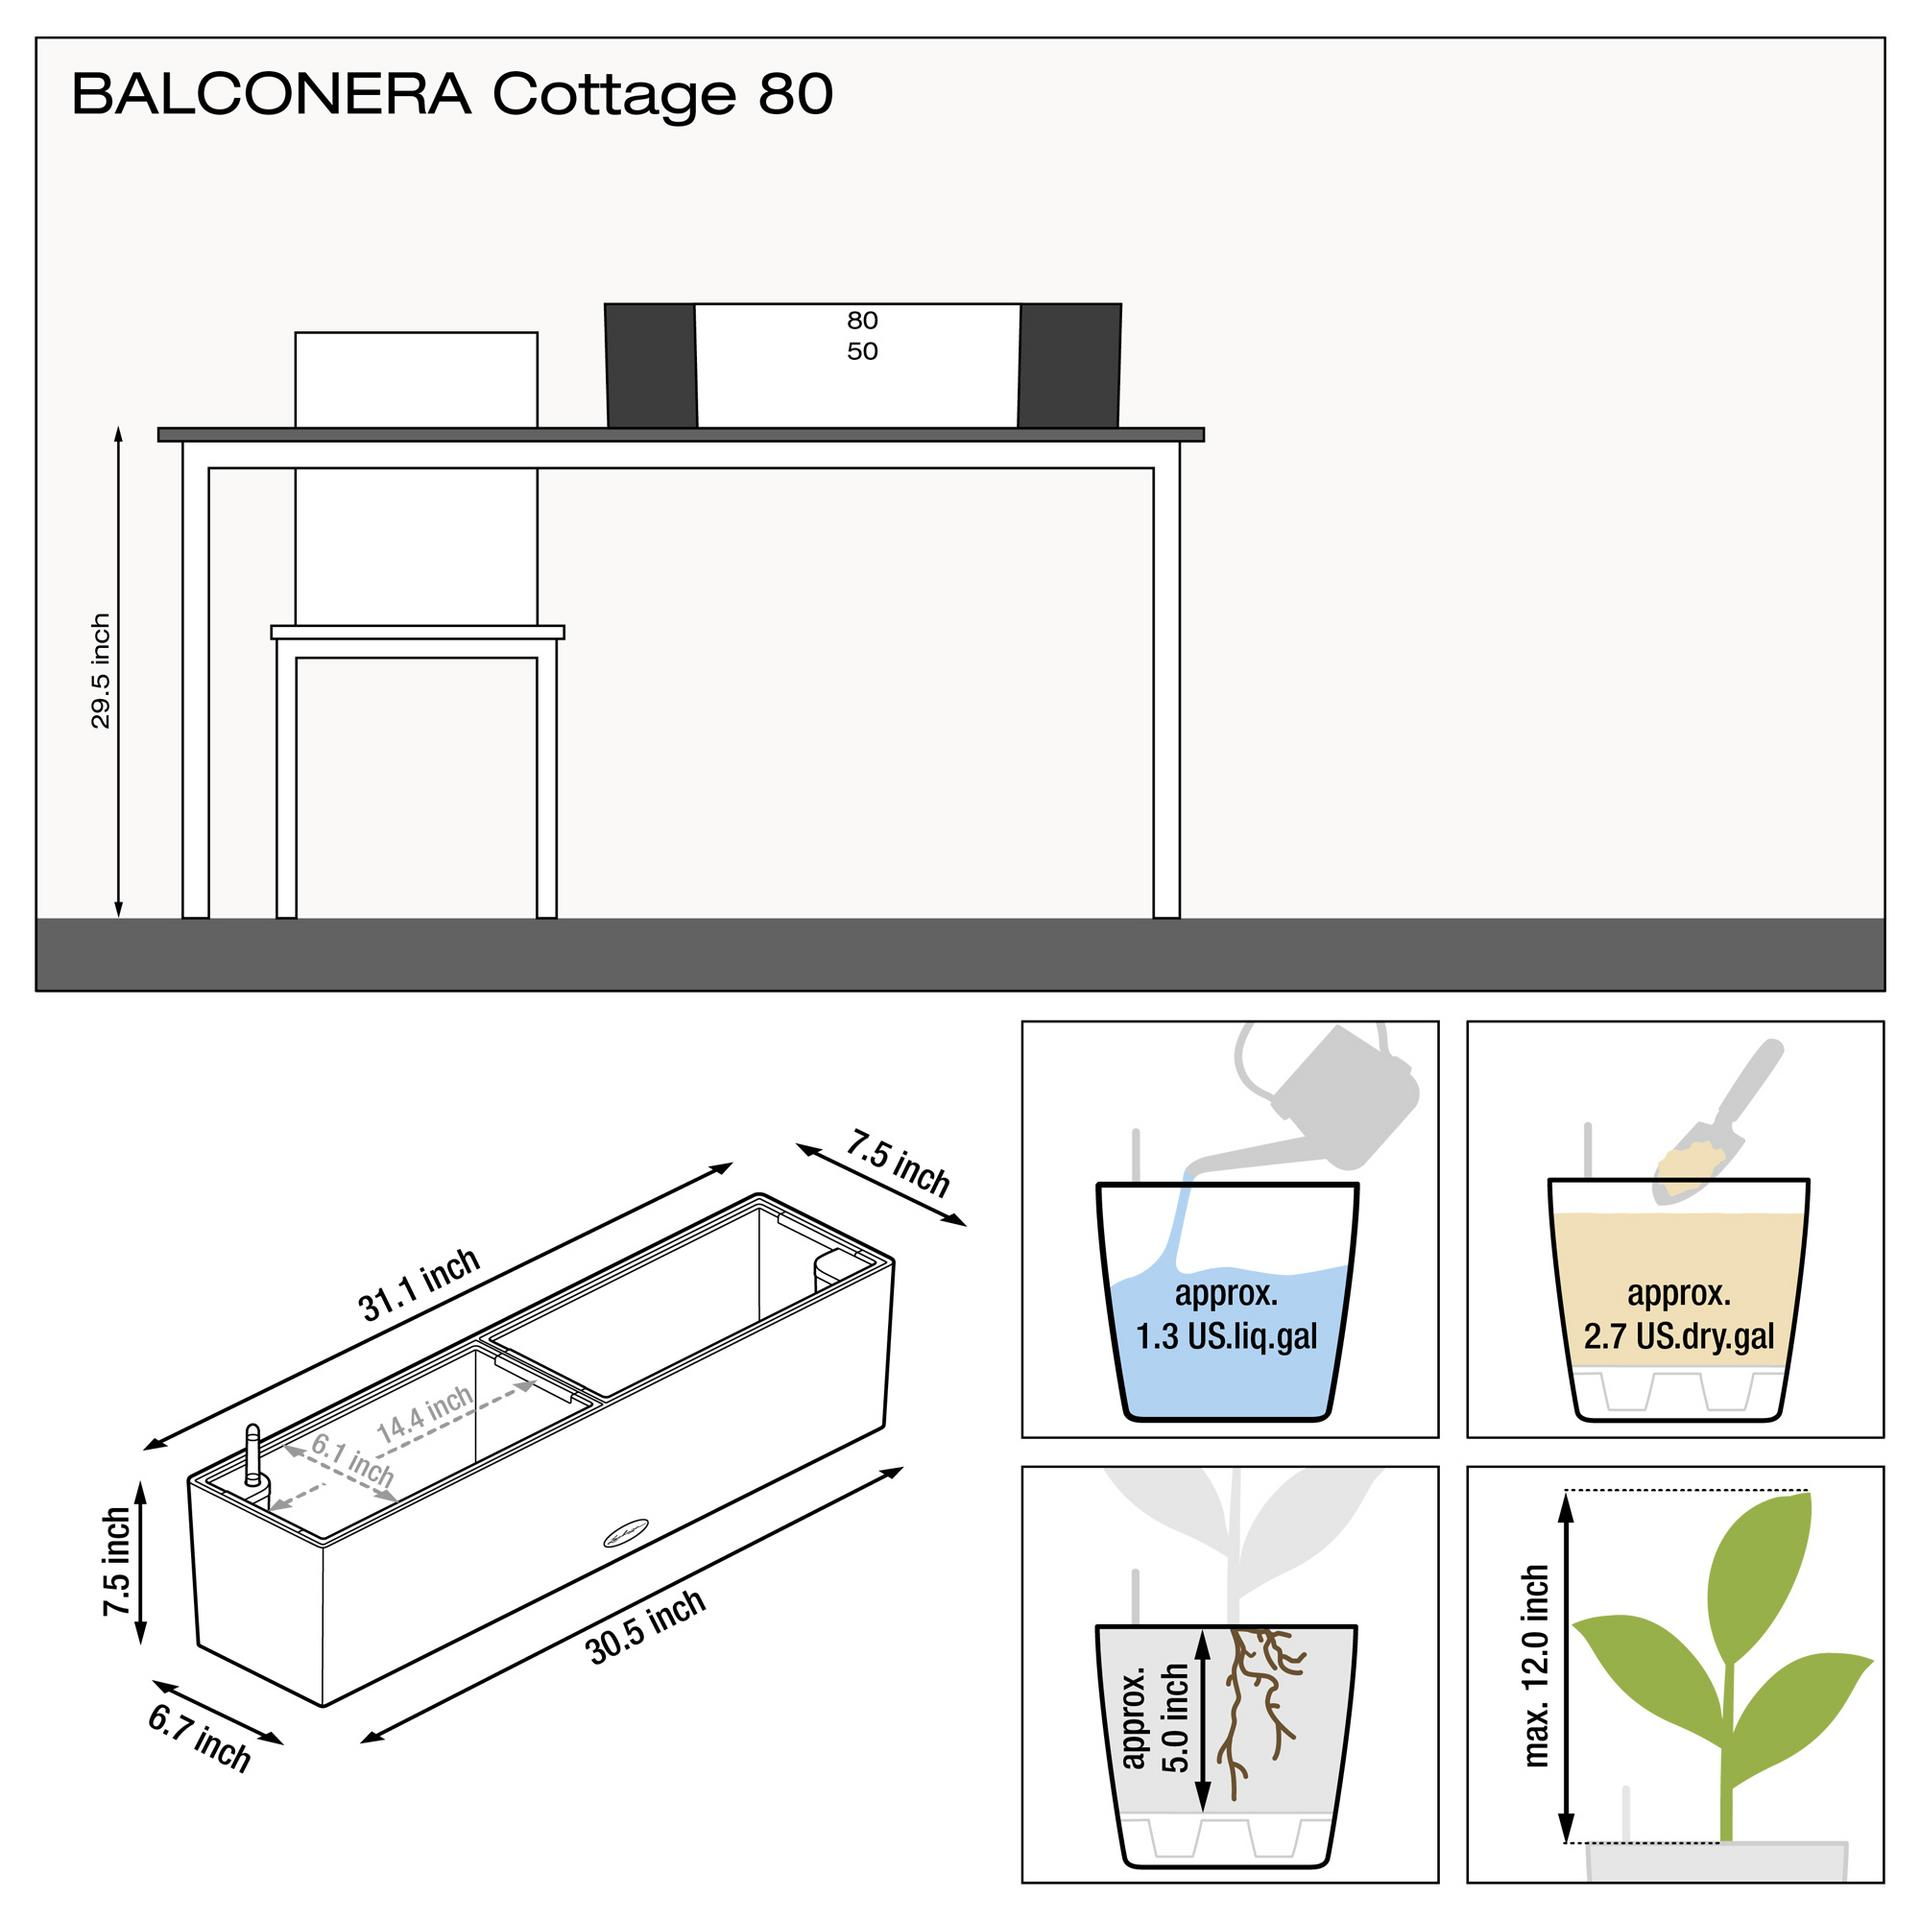 le_balconera-cottage80_product_addi_nz_us